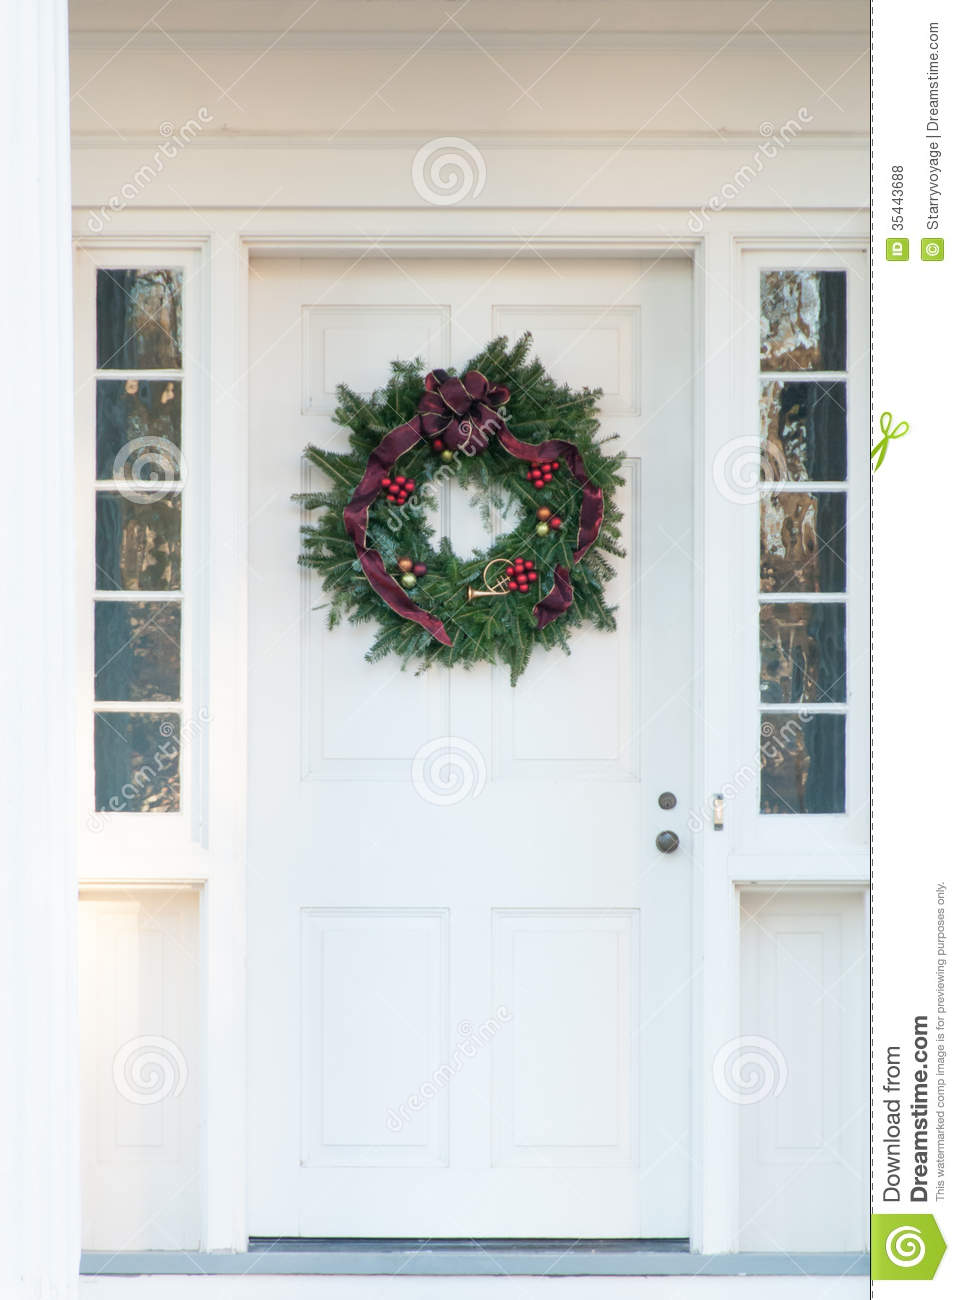 Le Meilleur Green Christmas Wreath On White Door Stock Photo Image Ce Mois Ci